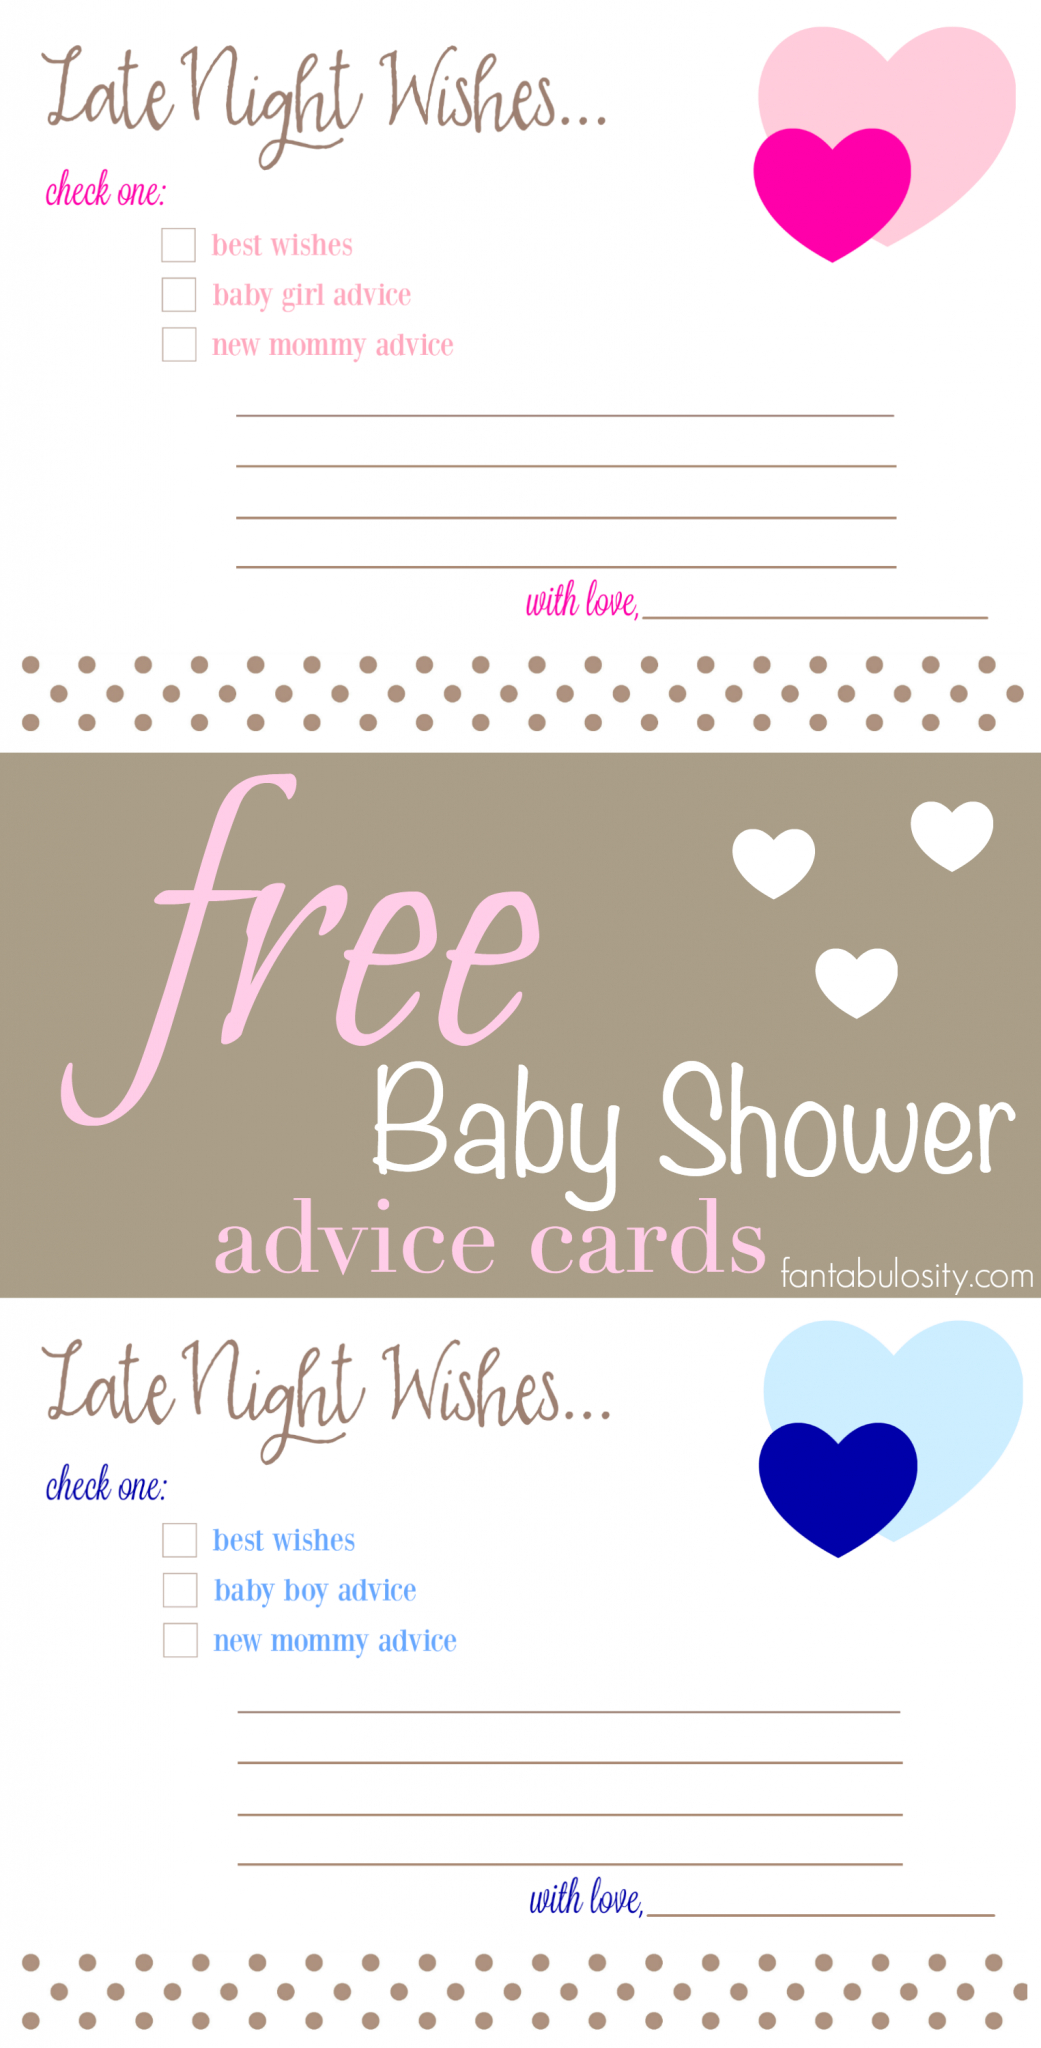 Free Printable Baby Shower Advice & Best Wishes Cards - Fantabulosity - Free Printable Baby Advice Cards